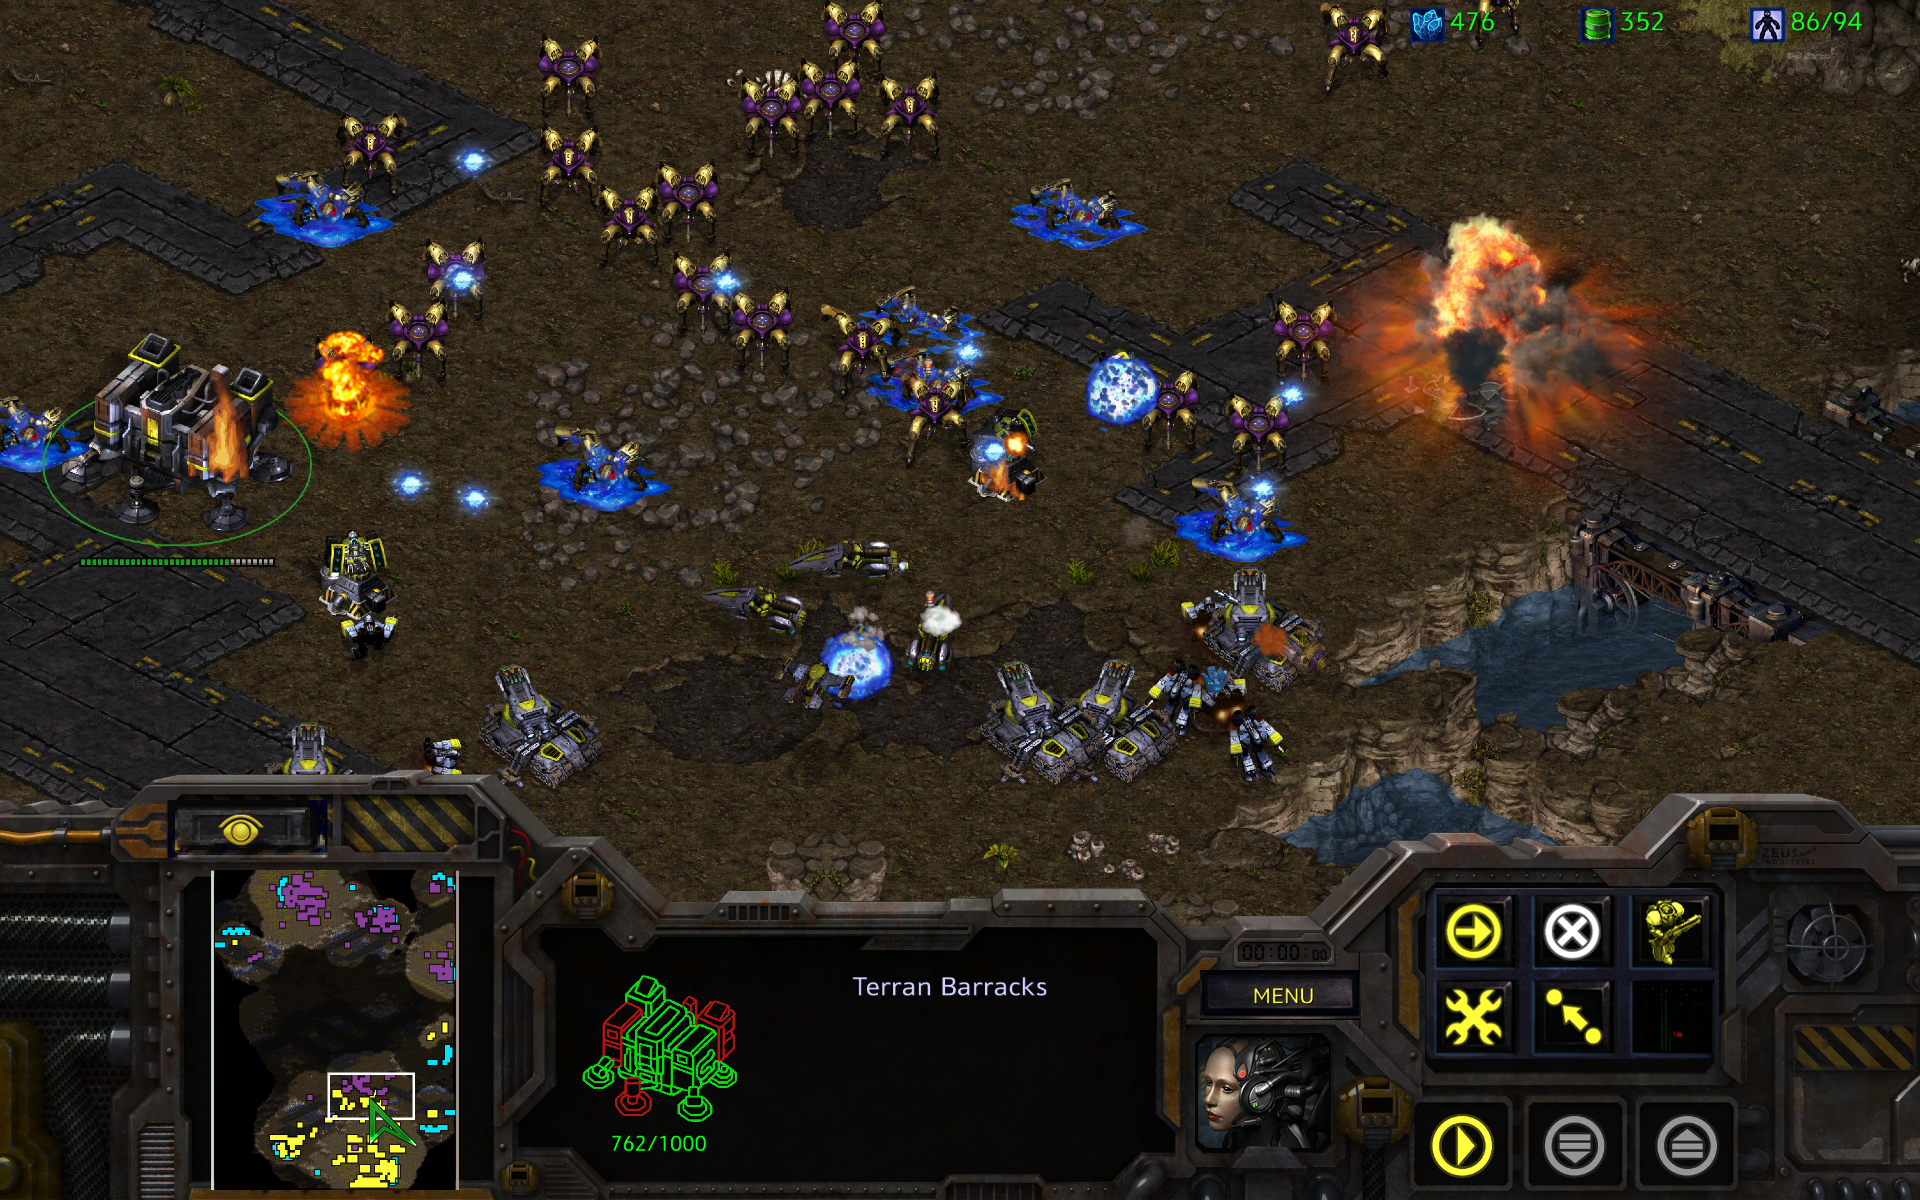 What We Like And Love About StarCraft: Remastered